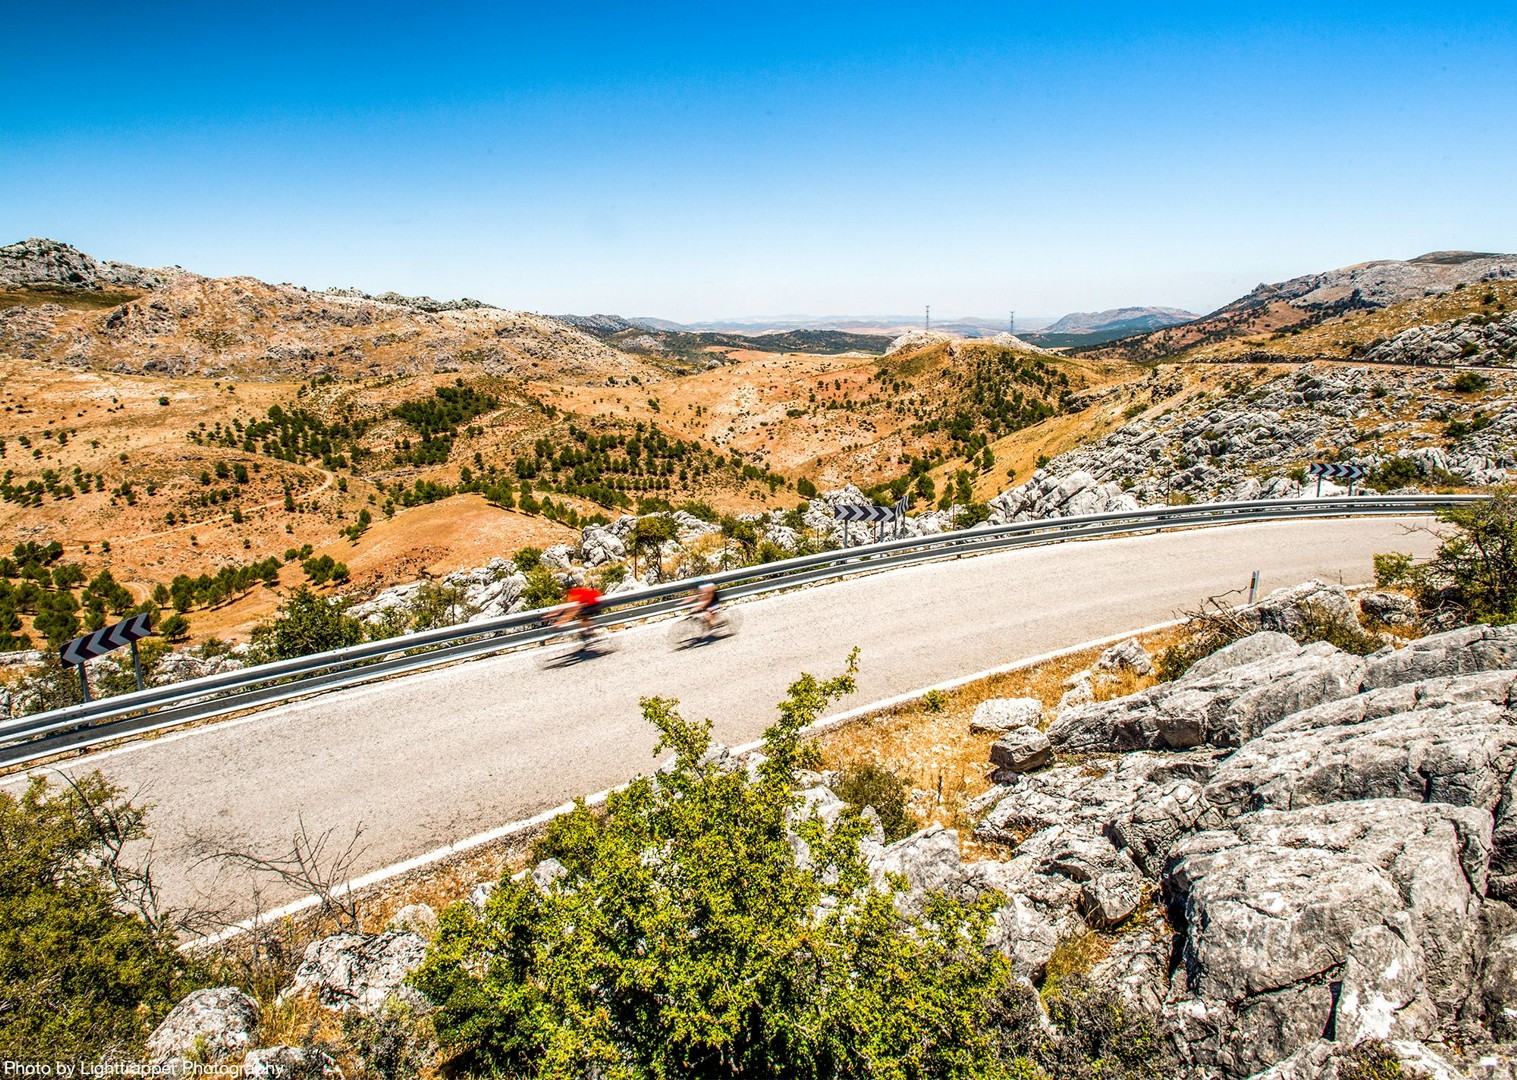 spain-basque-country-guided-road-cycling-holiday-21-day-tour-north-to-south.jpg - Spain - Basque Country to Andalucia - North to South (21 Days) - Guided Road Cycling Holiday - Road Cycling